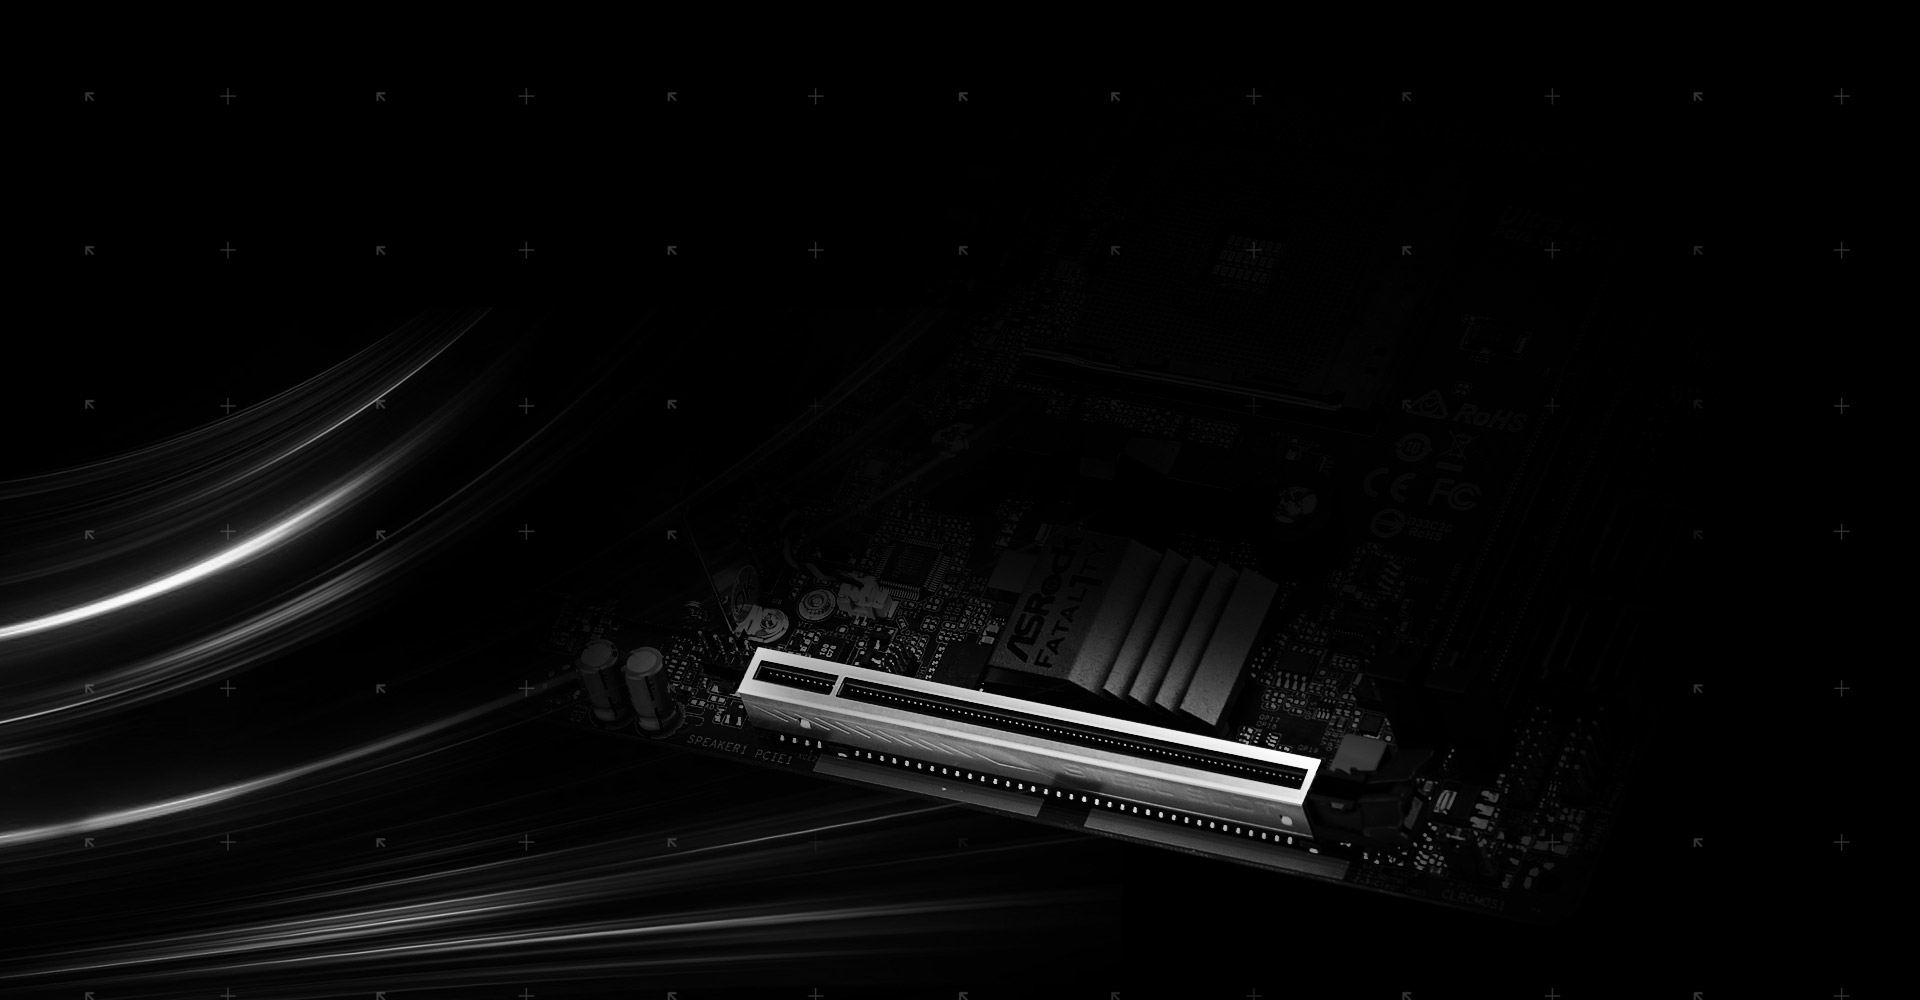 Asrock Fatal1ty B450 Gaming Itx Ac Hdmi To Usb Wiring Diagram The Advanced Pci E Steel Slots Packed With Solid Cover That Prevent Any Signal Interference Graphics Cards It Also Ensures Heavy